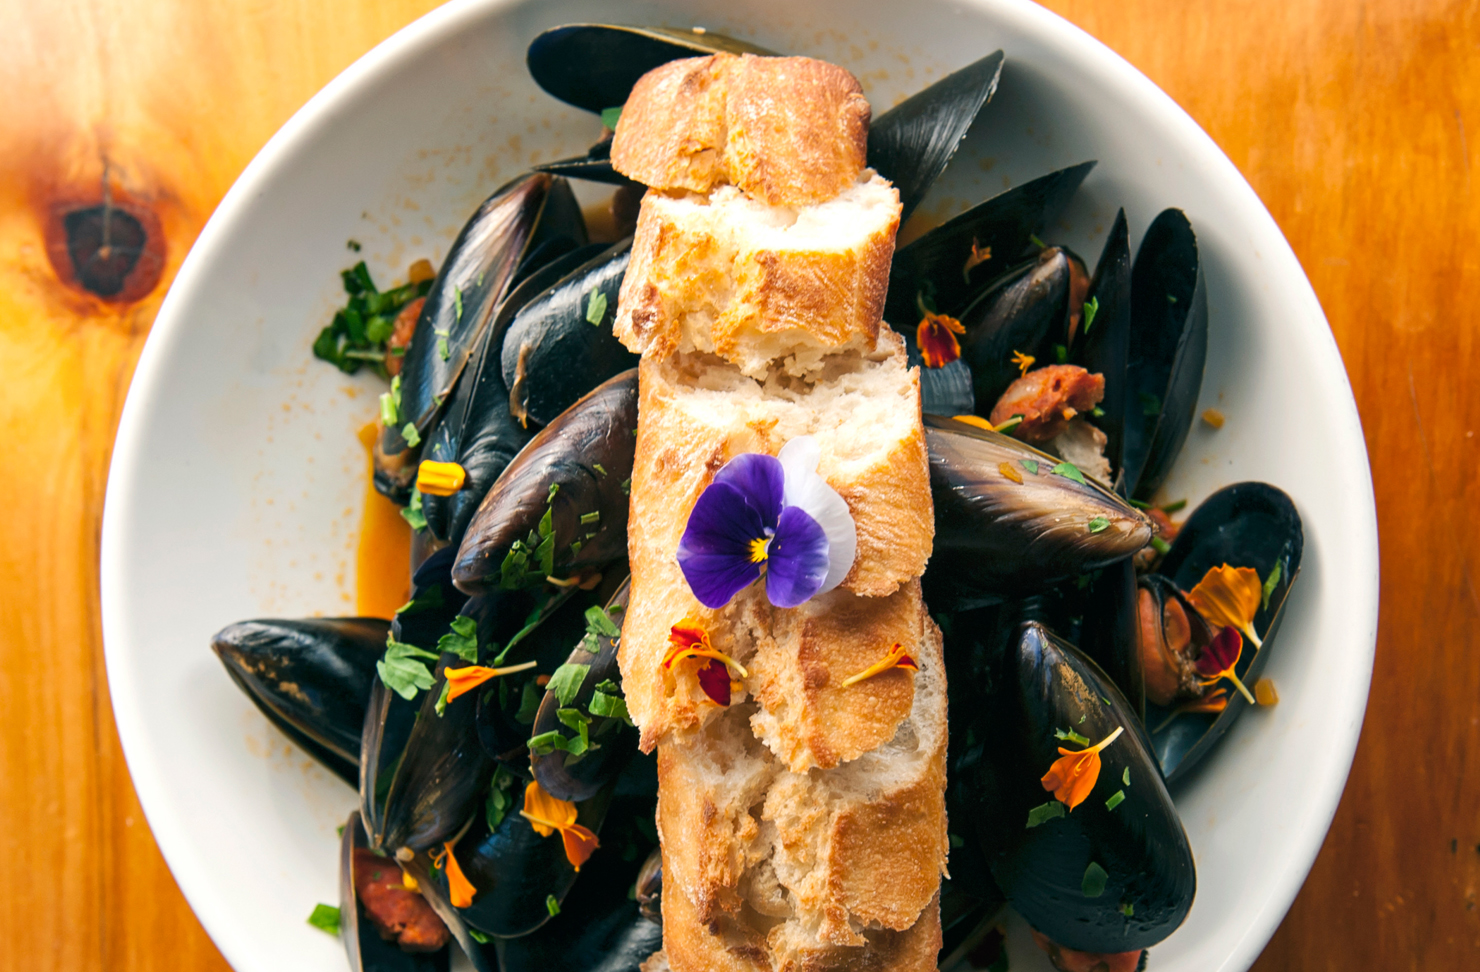 A delicious looking dish of mussels topped with a baguette from Mavis' Kitchen.